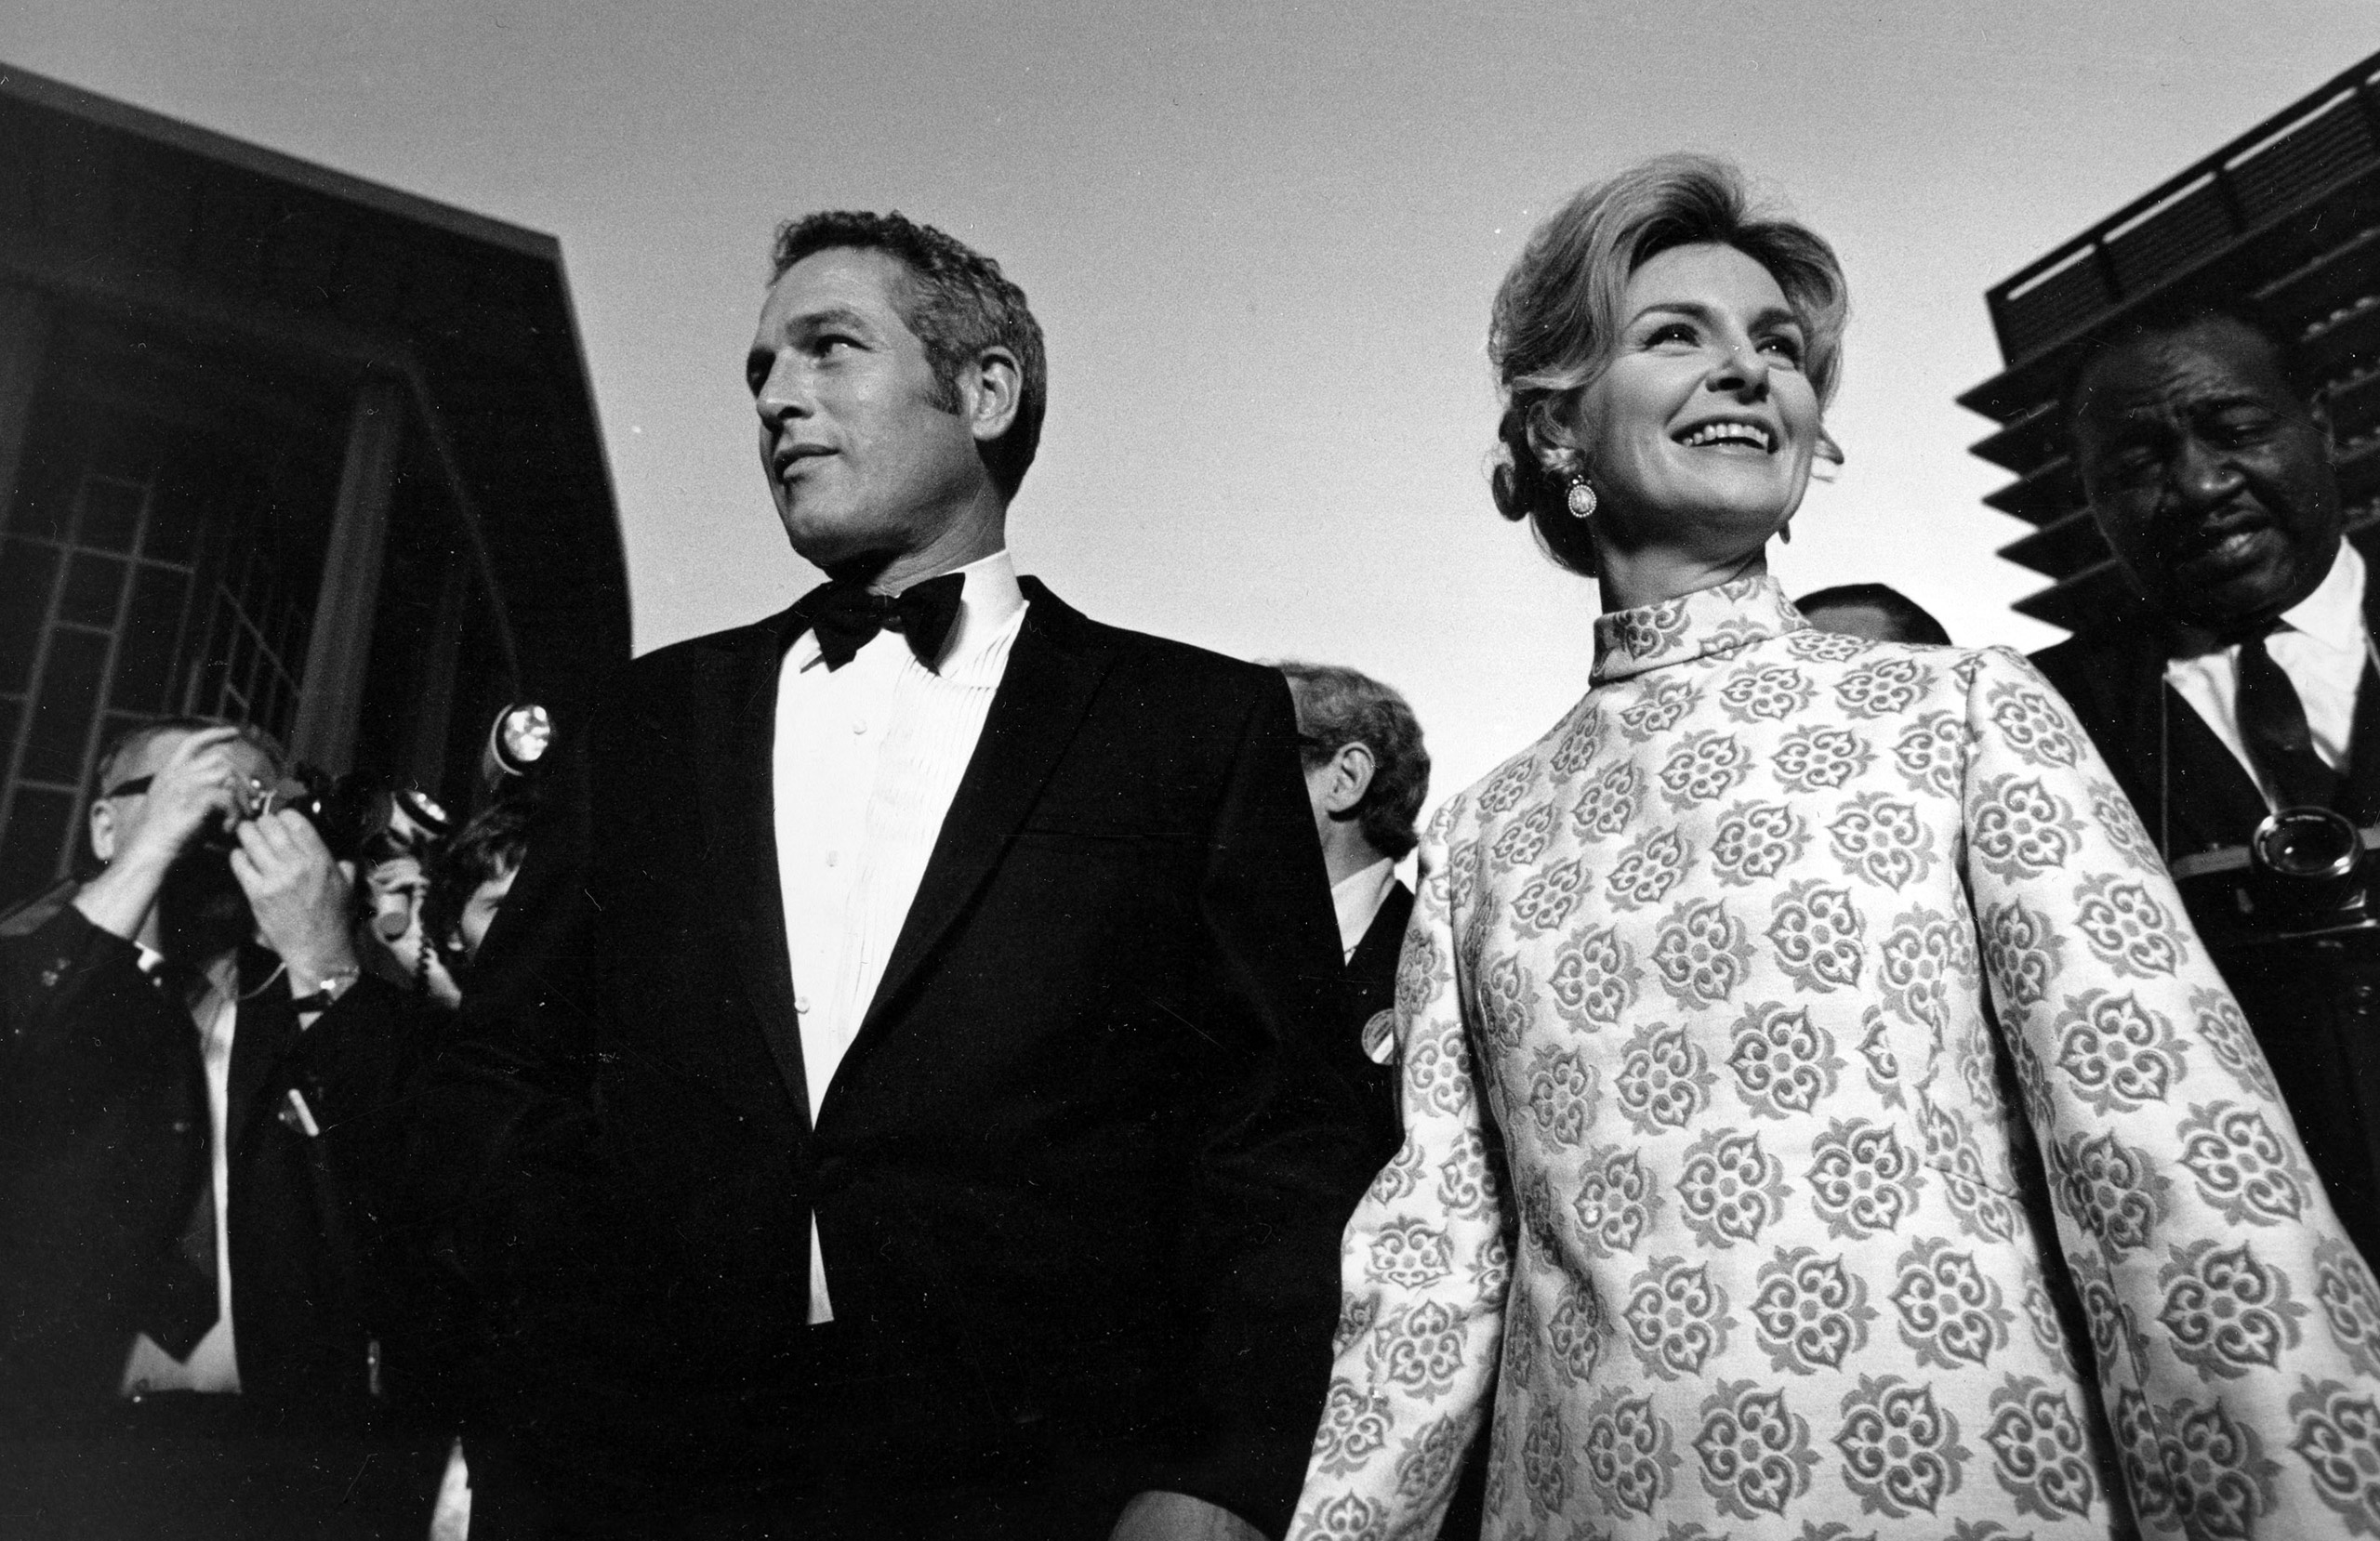 Joanne Woodward arrives with her husband, Paul Newman, at the Academy Awards, 1969.